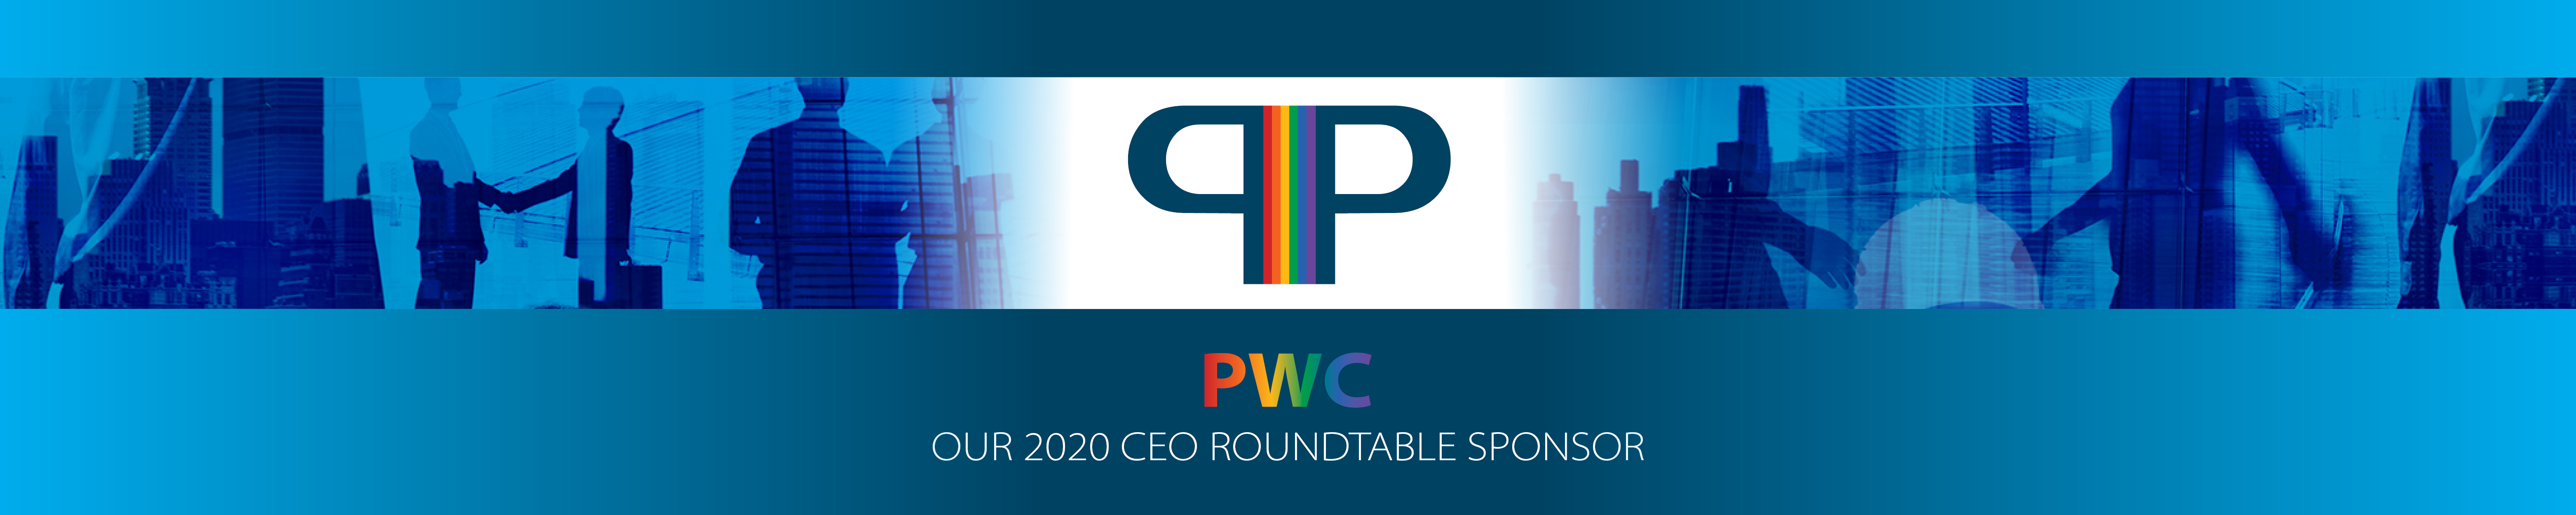 PIP_Conference_CEO_Roundtable